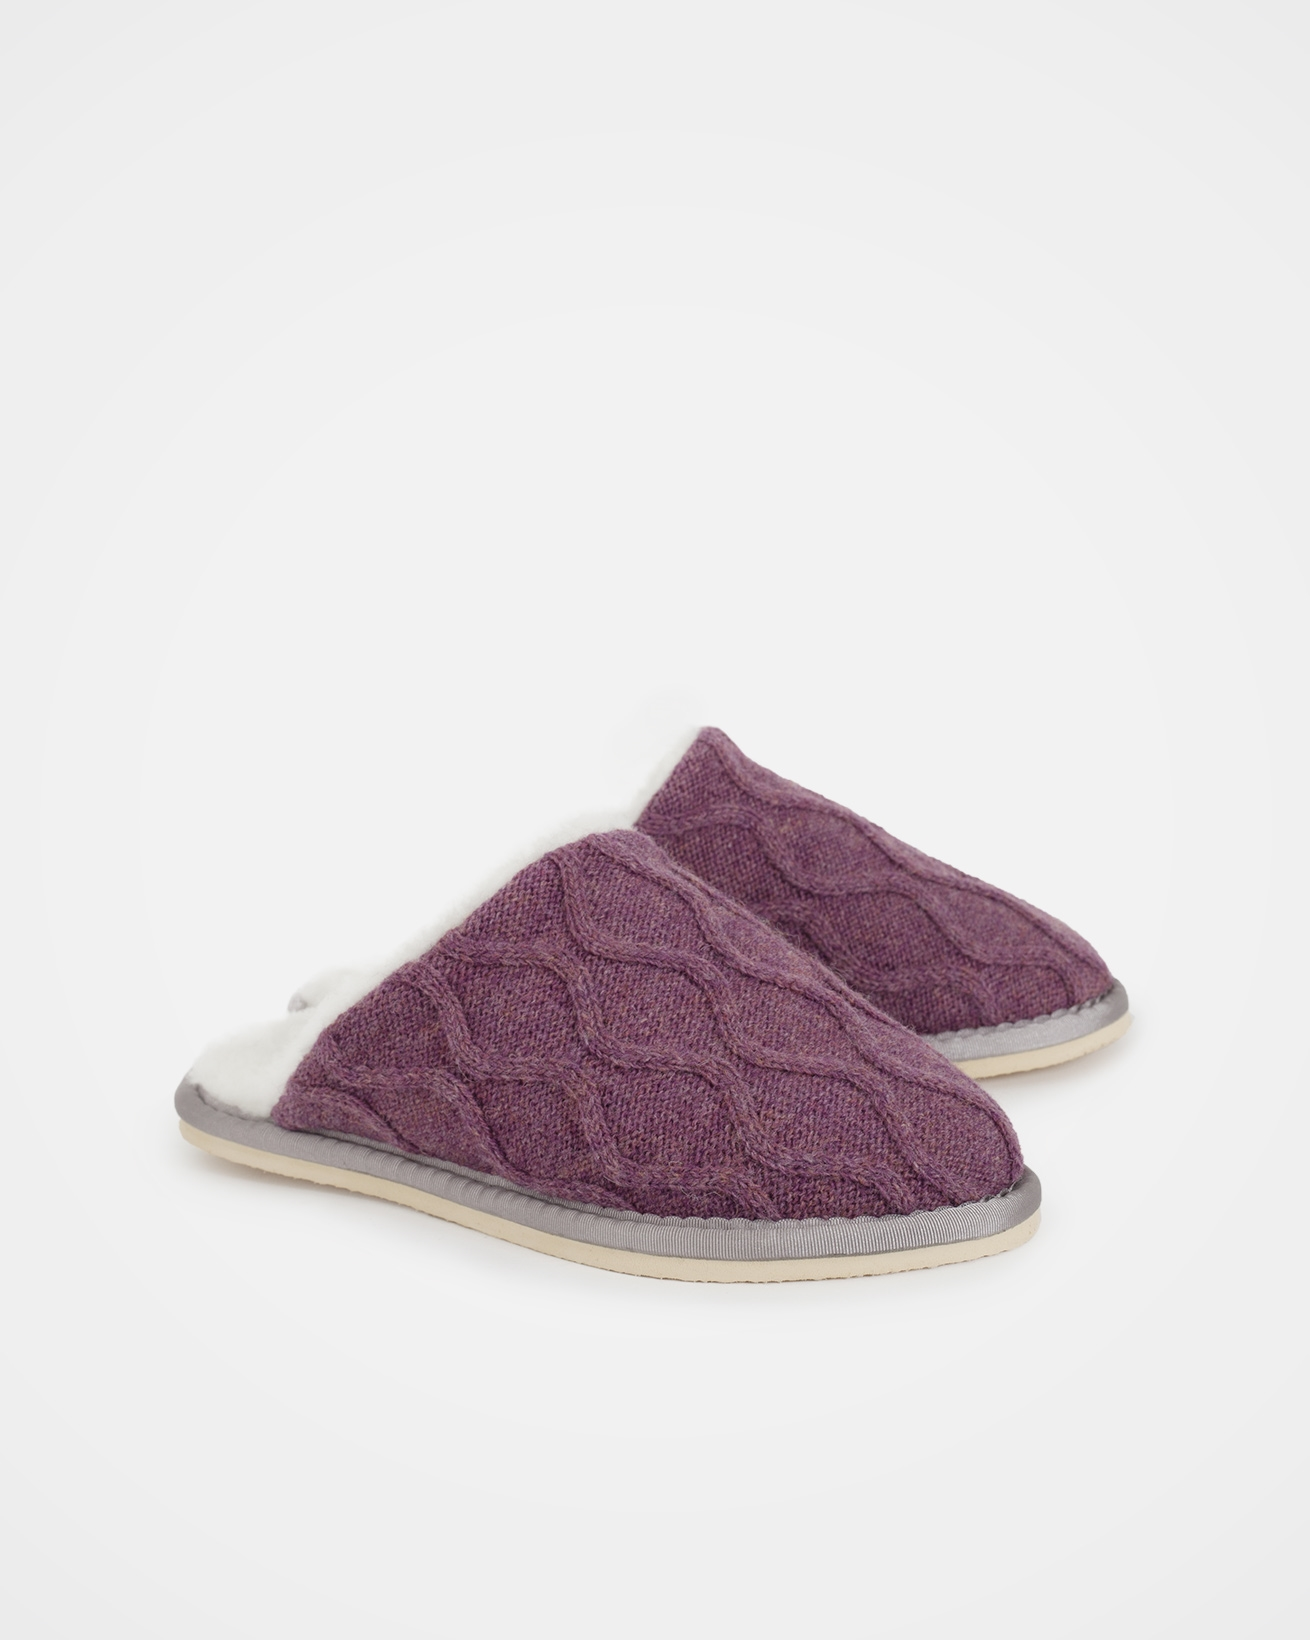 Knitted Mules - Size 6 - Sloeberry - 1621